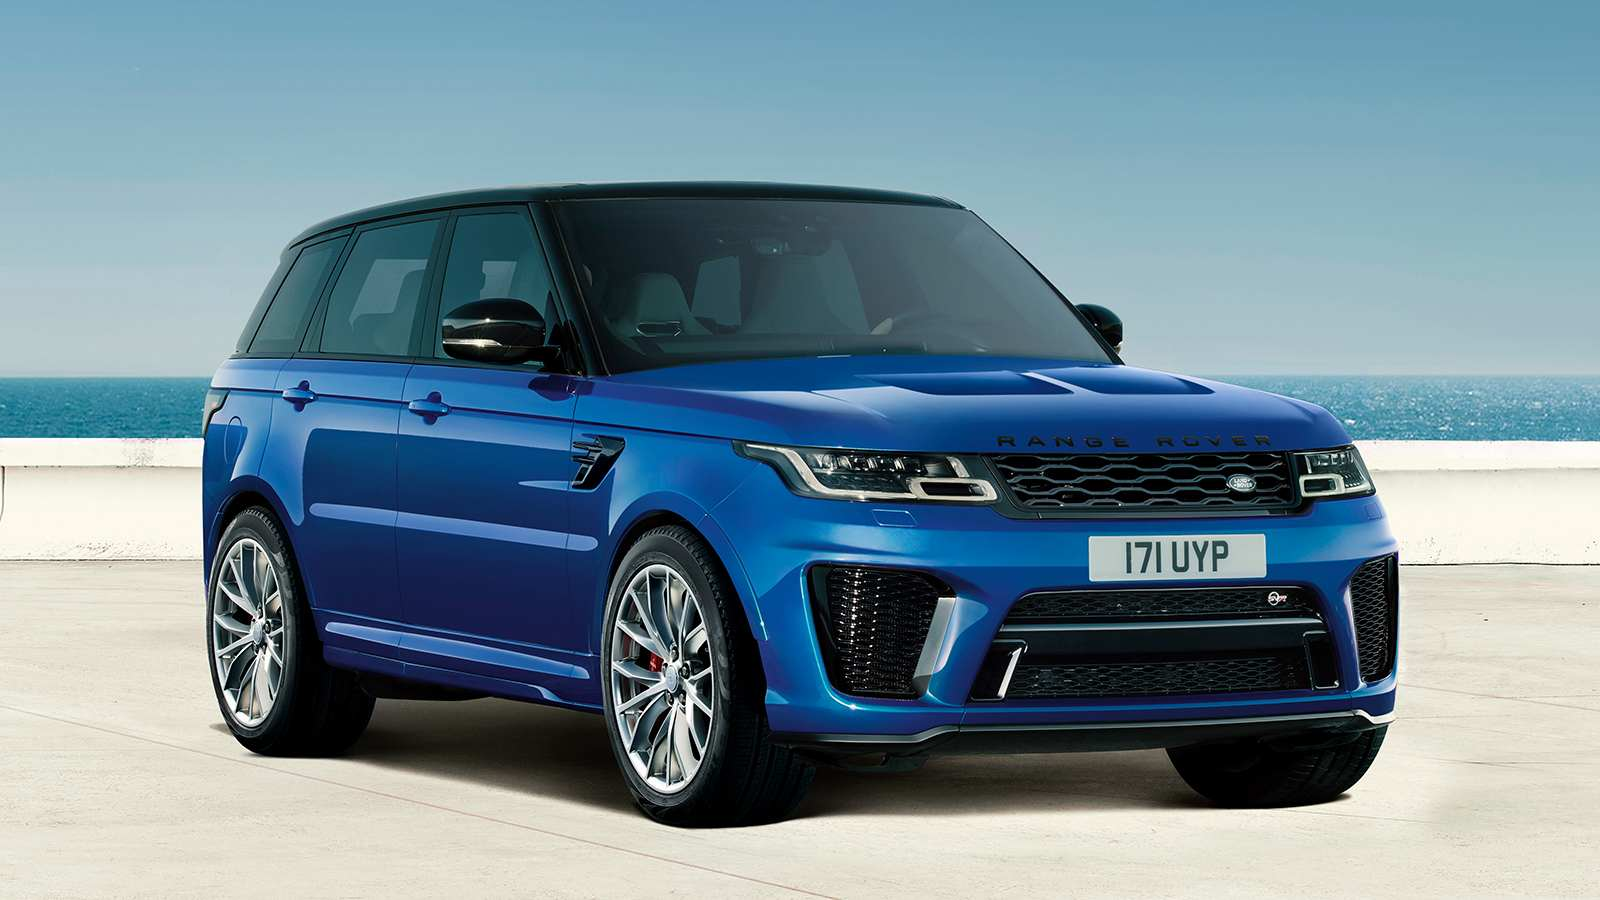 The 2021 Range Rover Sport SVR can go from 0-100 kph in a claimed 4.5 seconds. Image: Land Rover